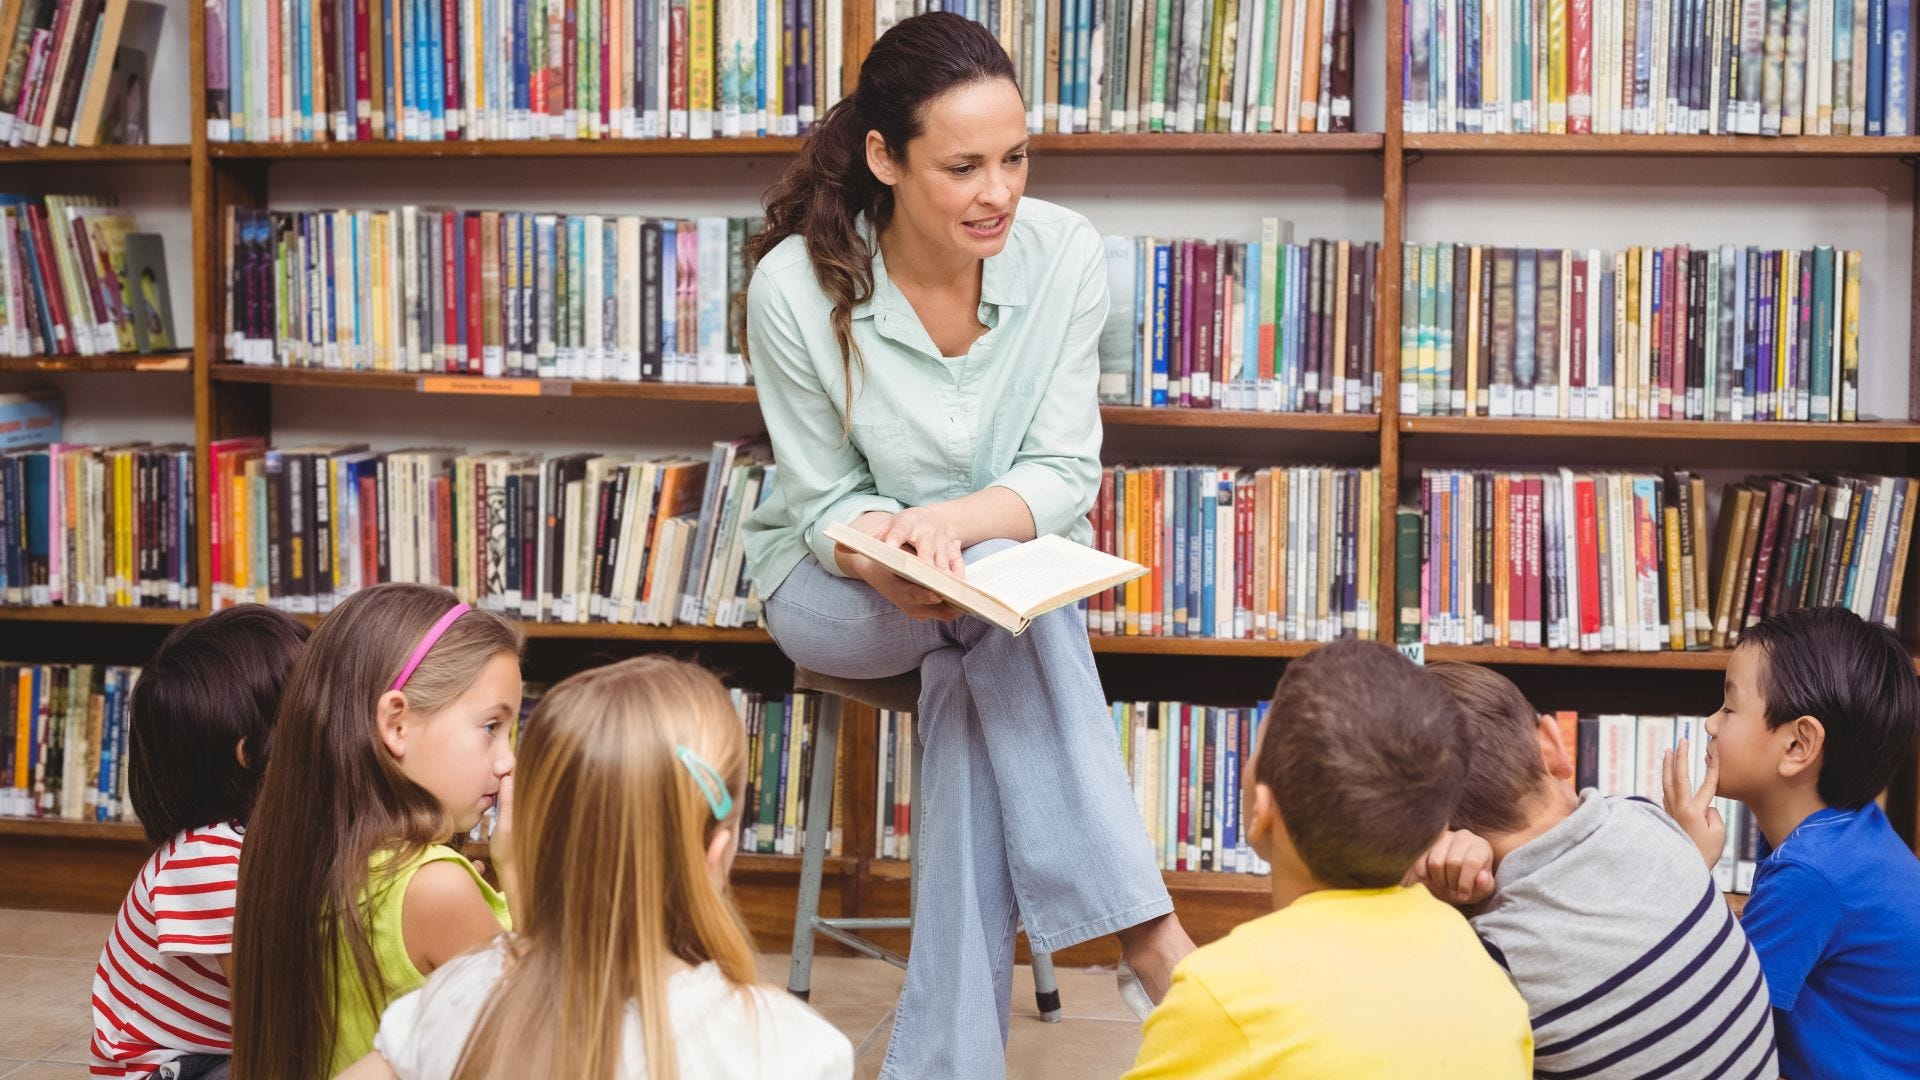 A woman reading a book to a group of kids during storytime at a library.